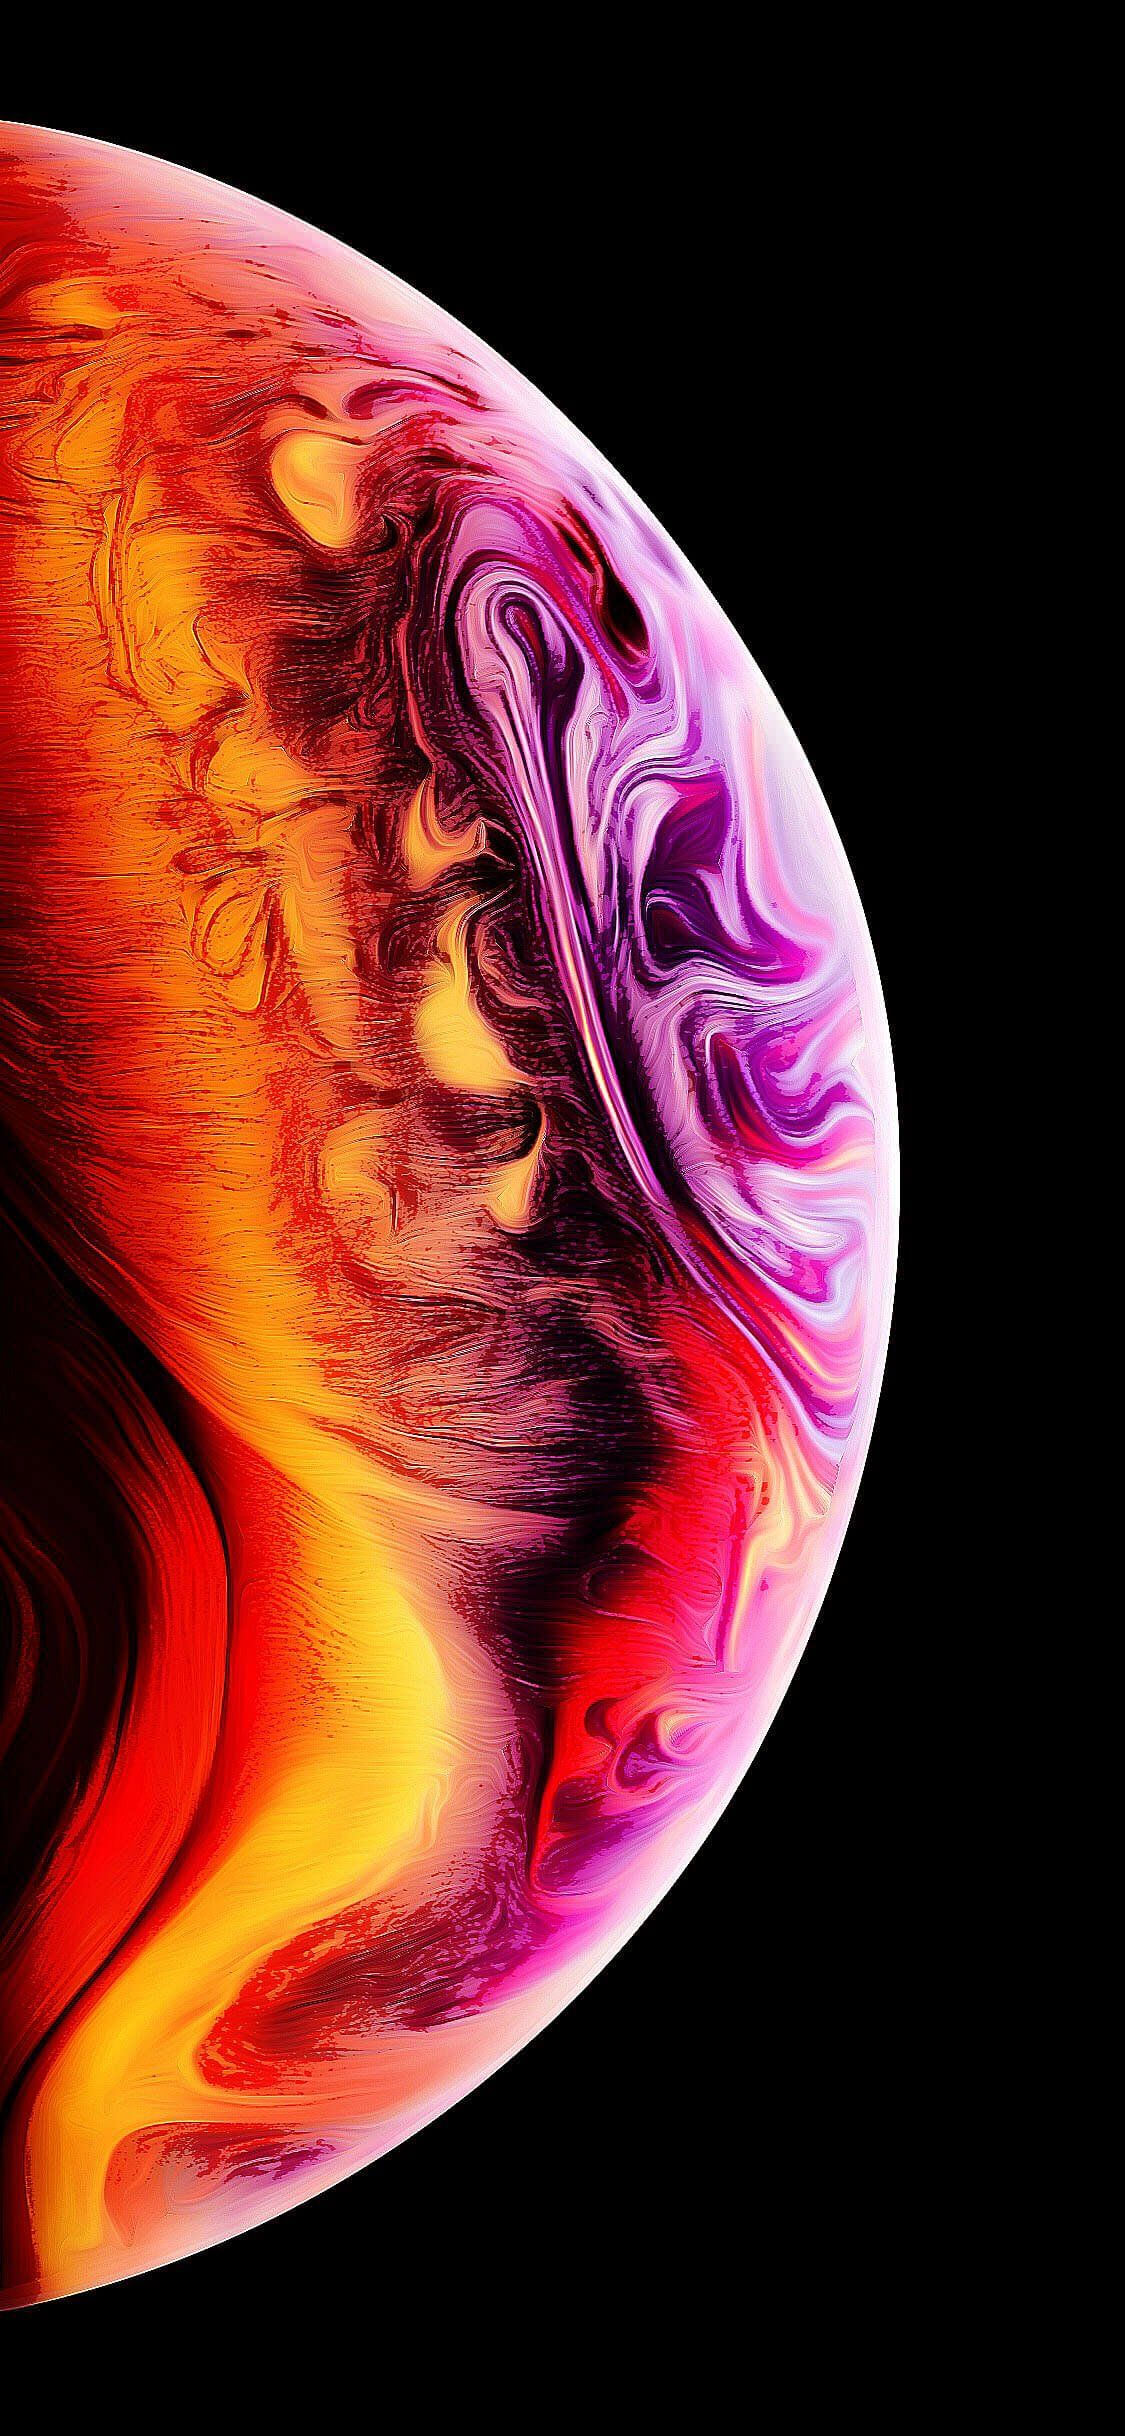 35+ Stunning iPhone XS Wallpapers & Backgrounds in HD